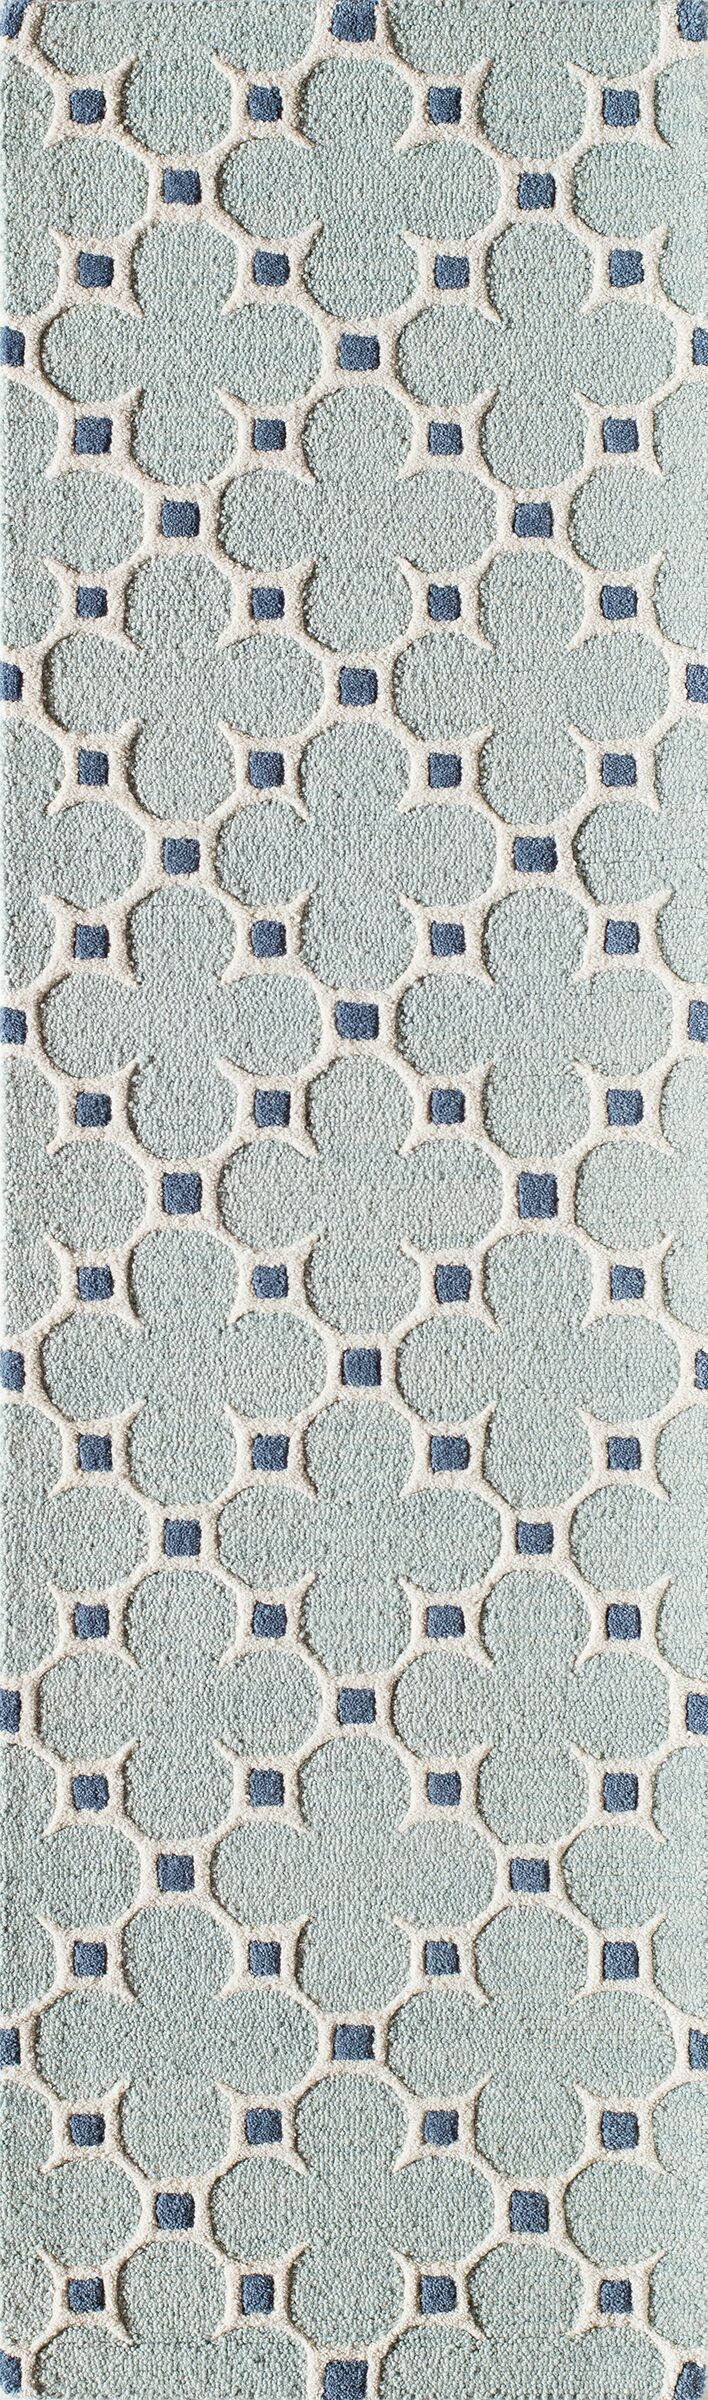 Sharell Hand-Tufted Blue Area Rug Rug Size: Runner 2'3